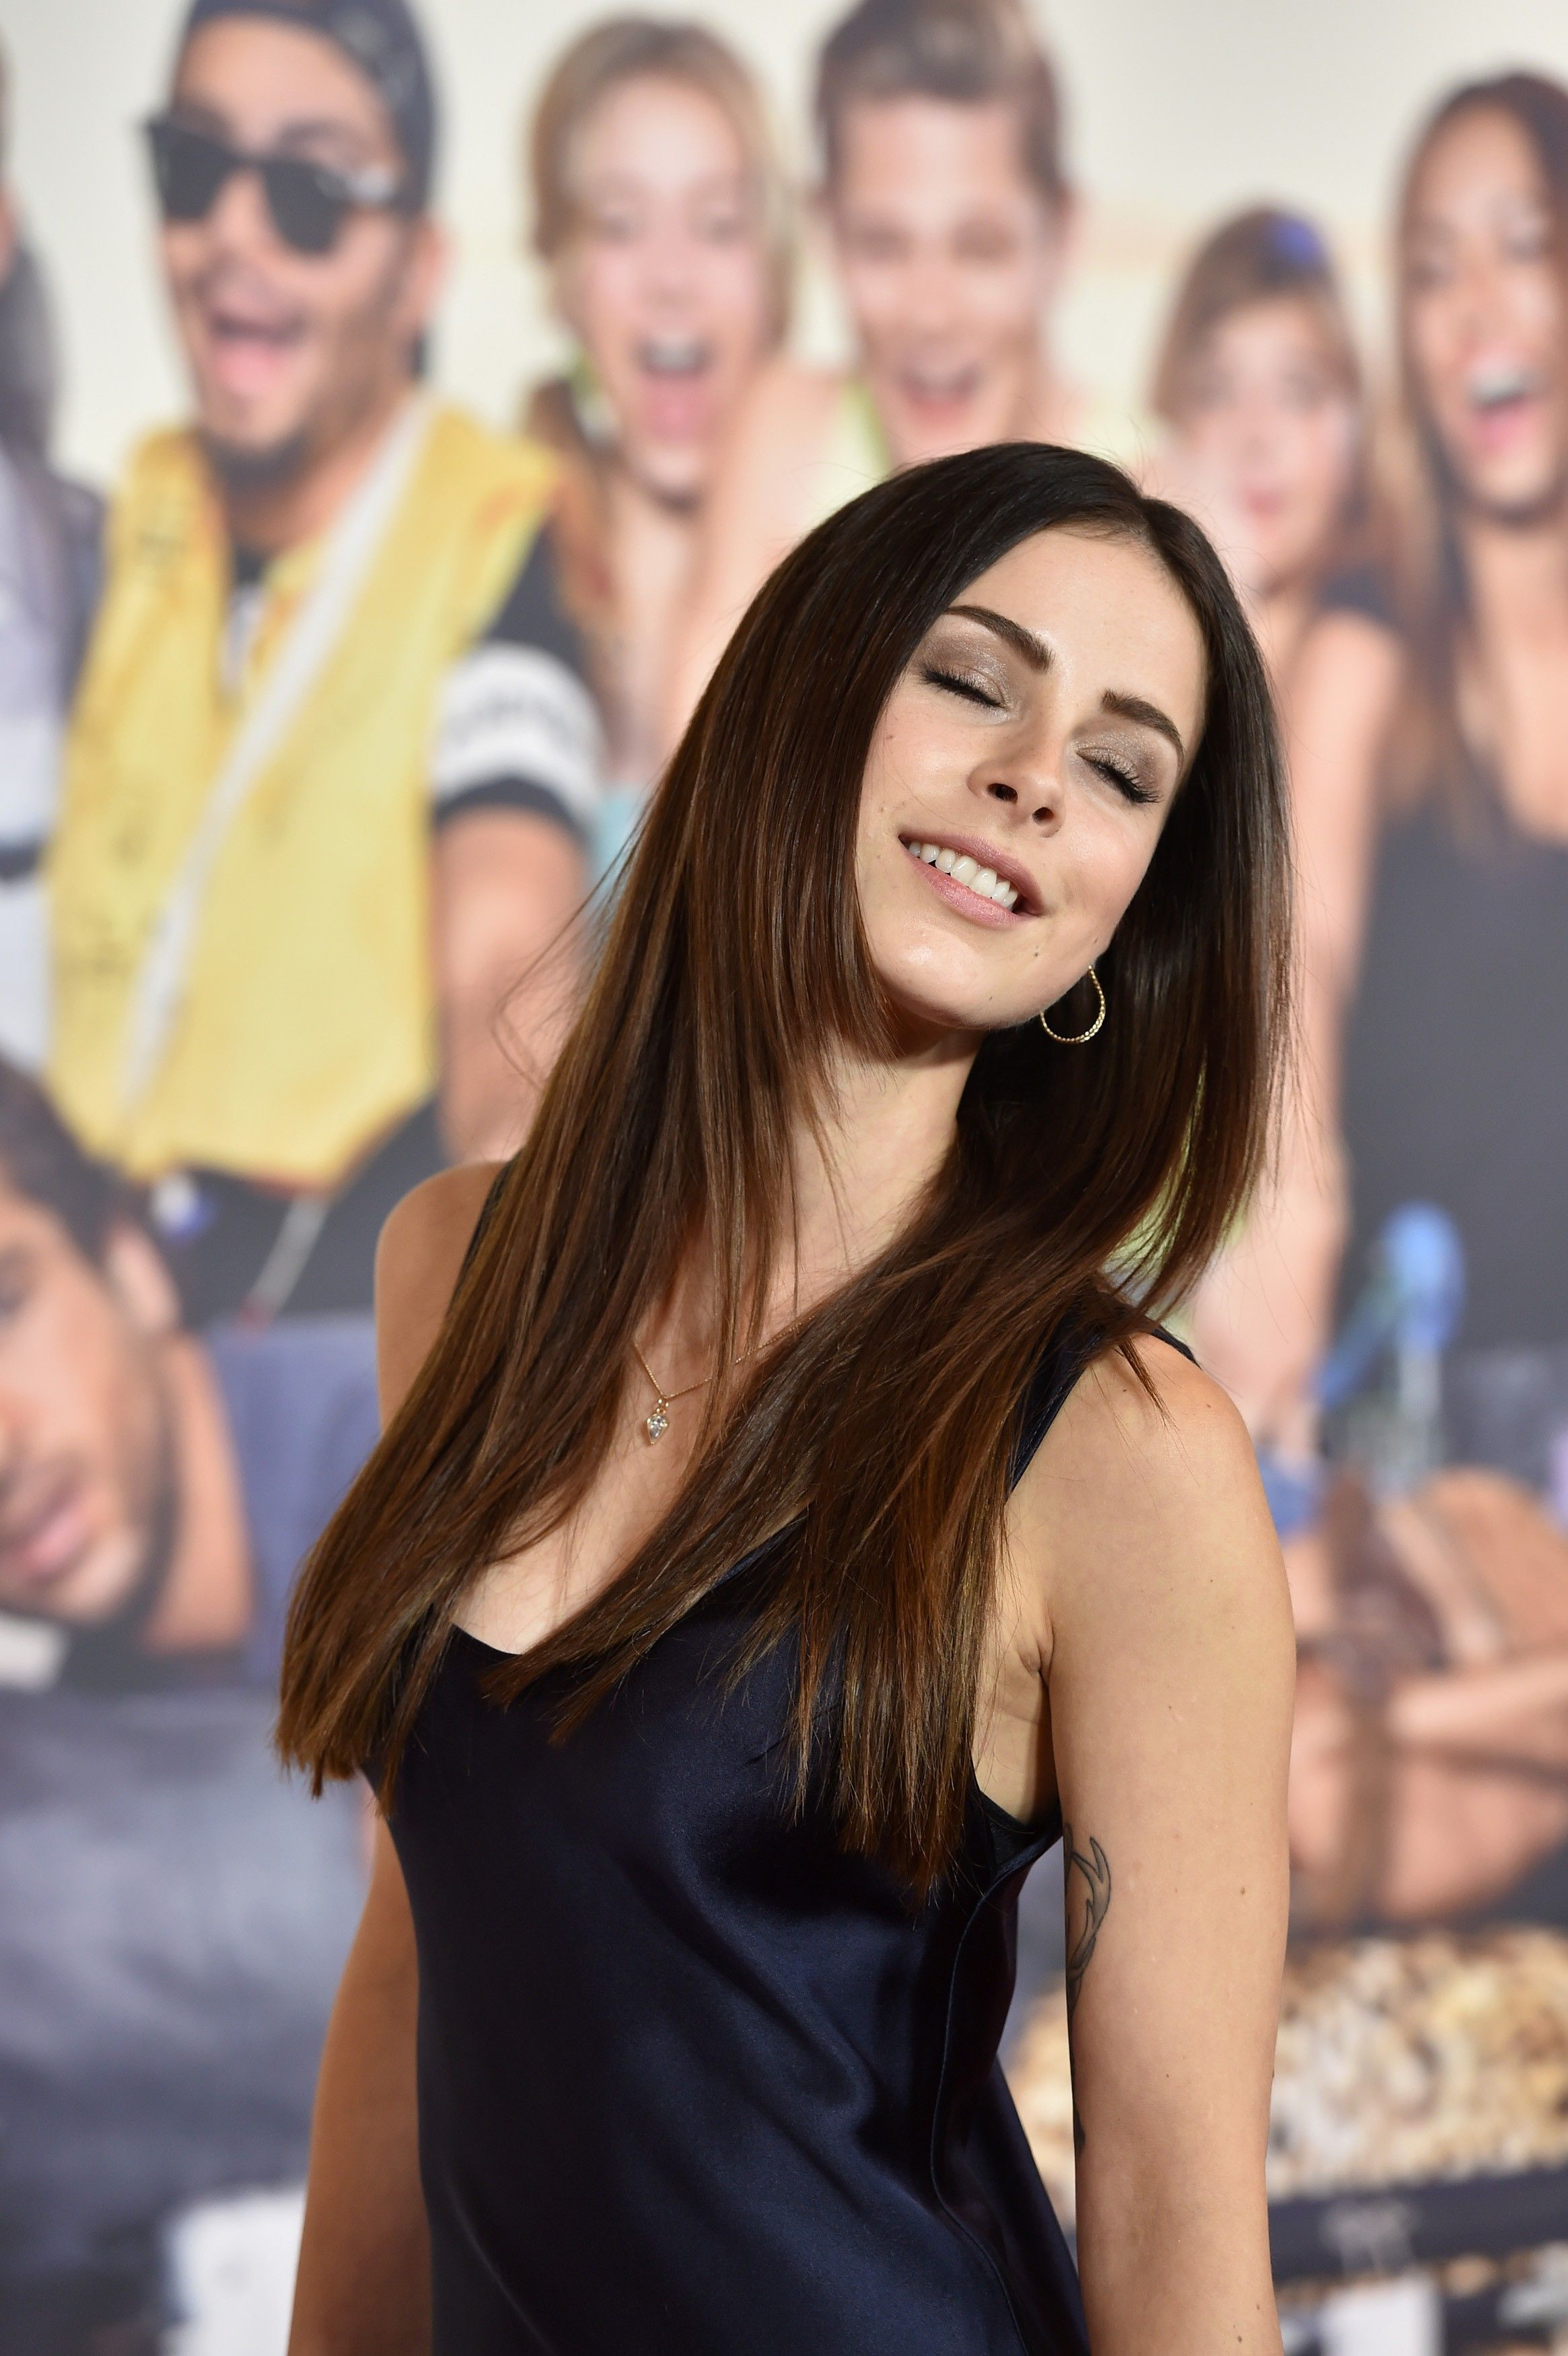 Sideboobs Lena Meyer Landrut naked (75 photo), Pussy, Leaked, Instagram, underwear 2015